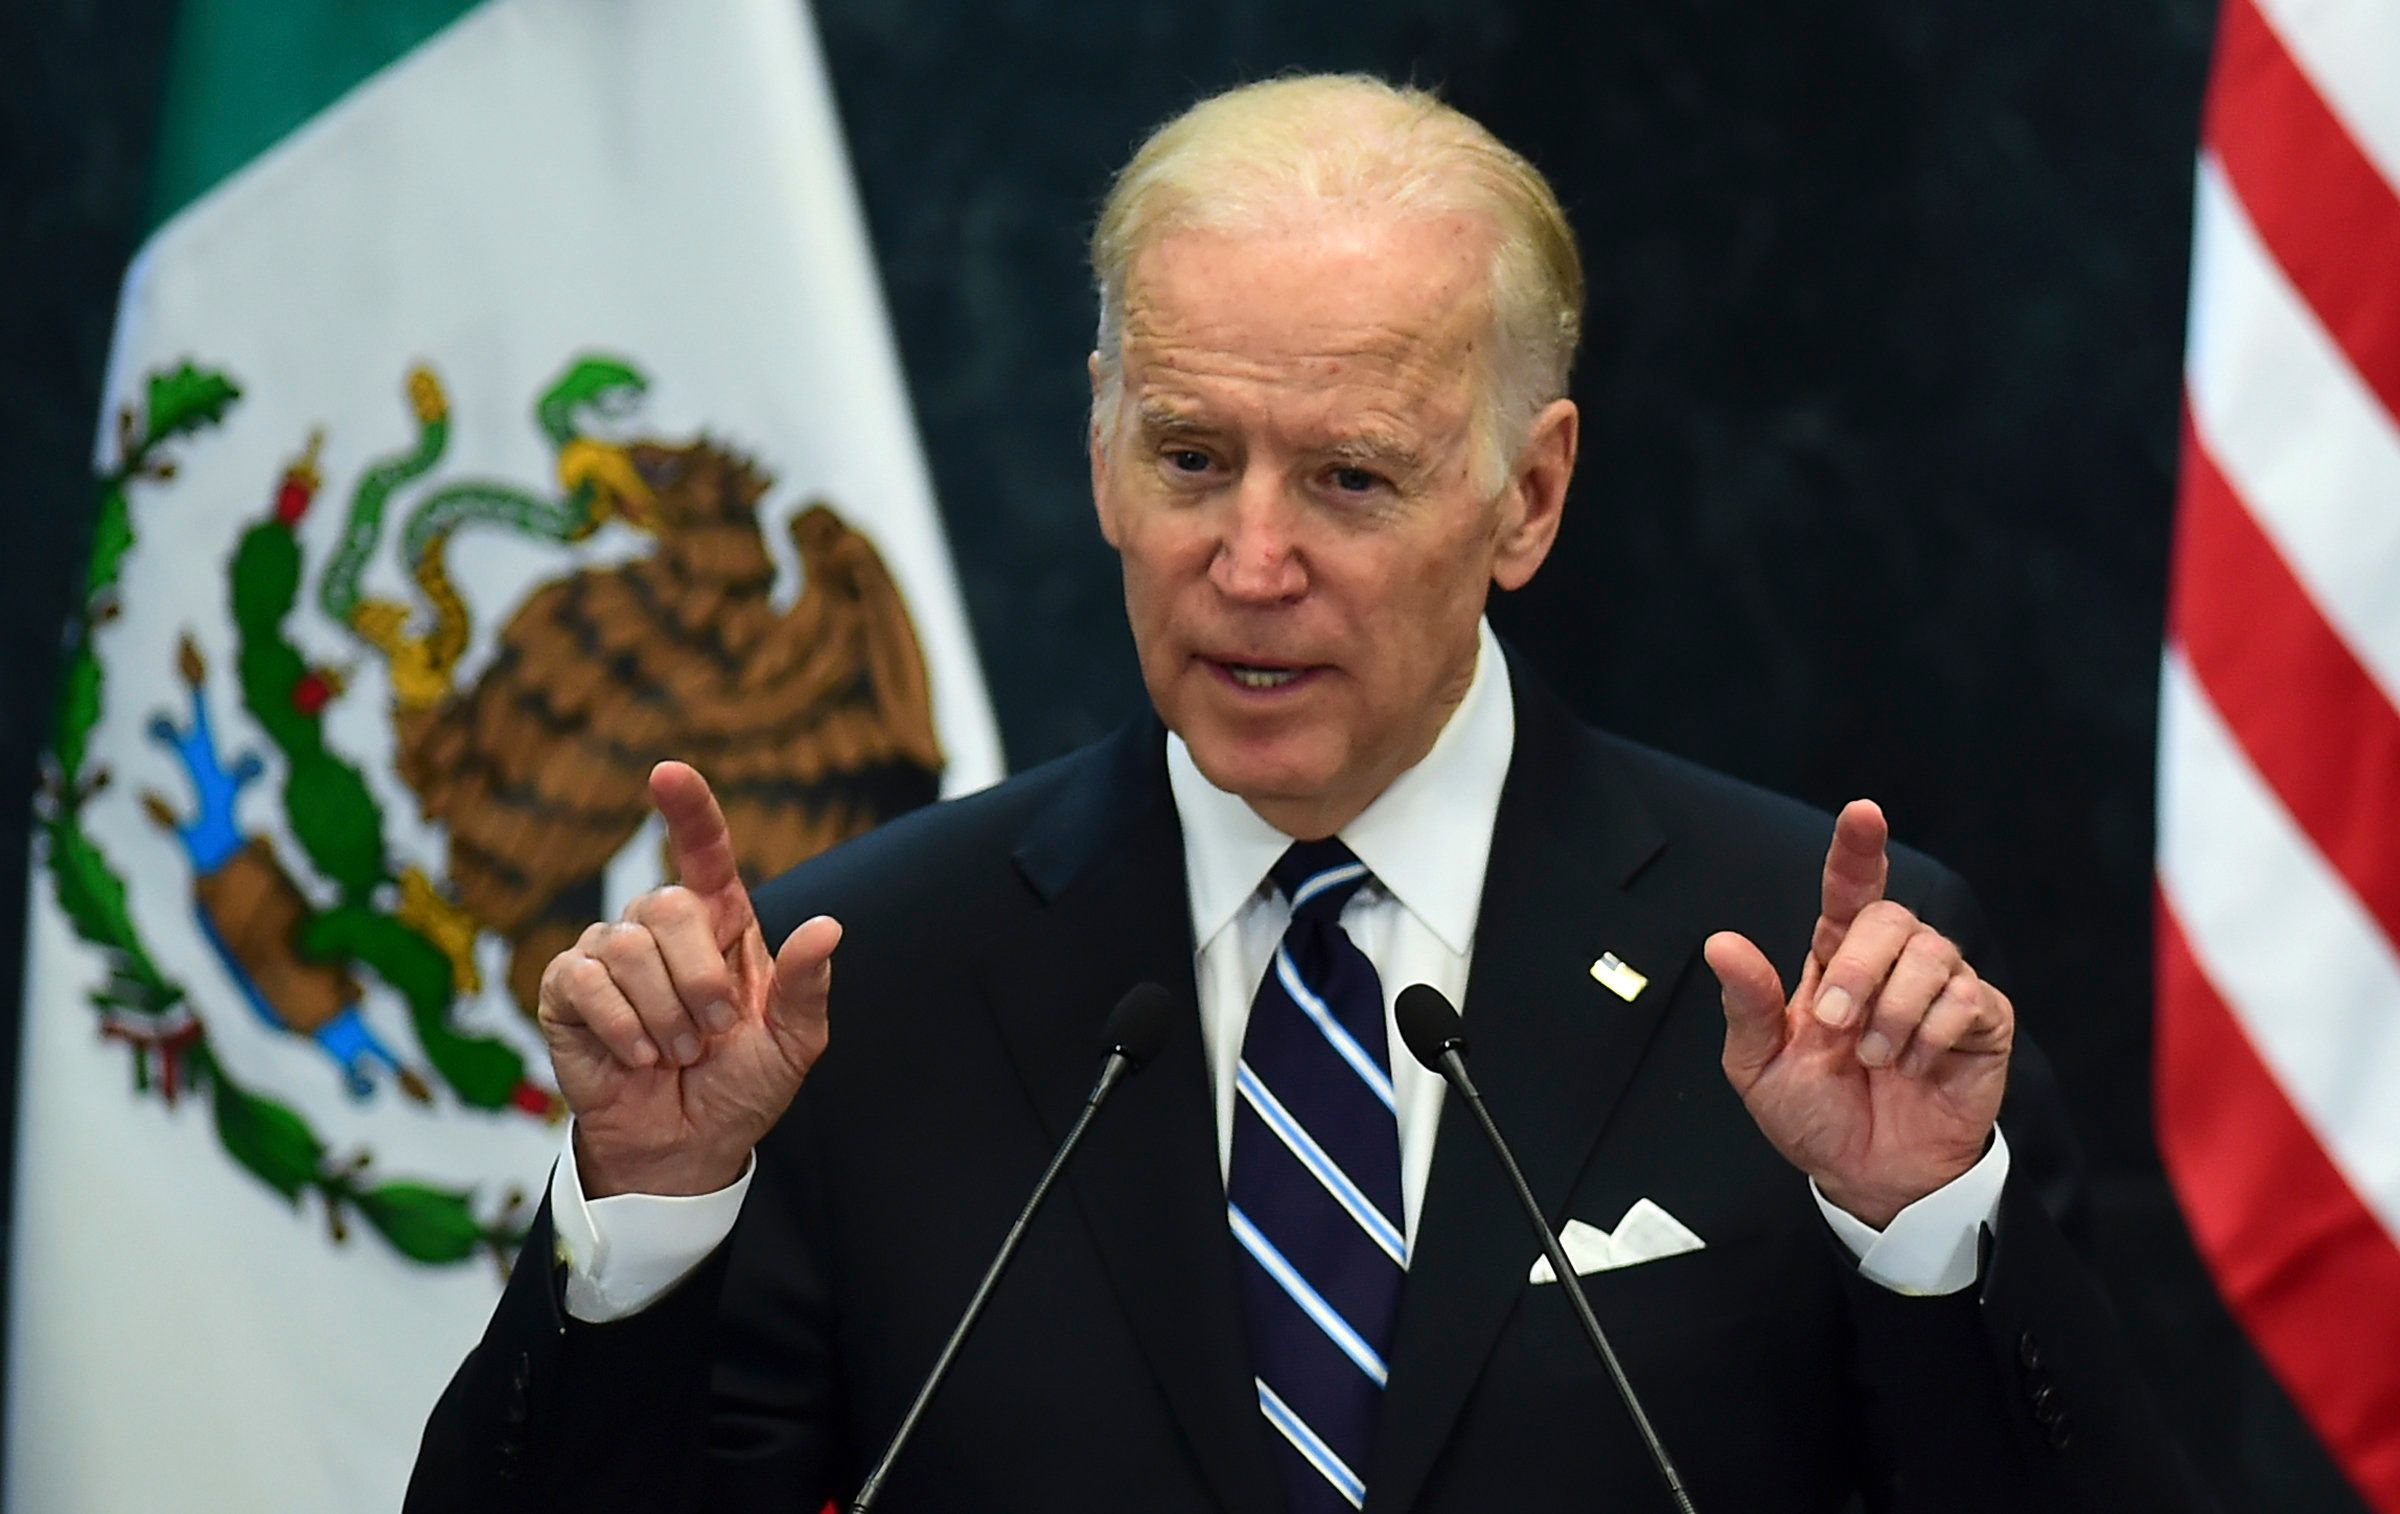 Vice President Joe Biden addresses the press at Los Pinos presidential residence in Mexico City on Feb. 25, 2016.